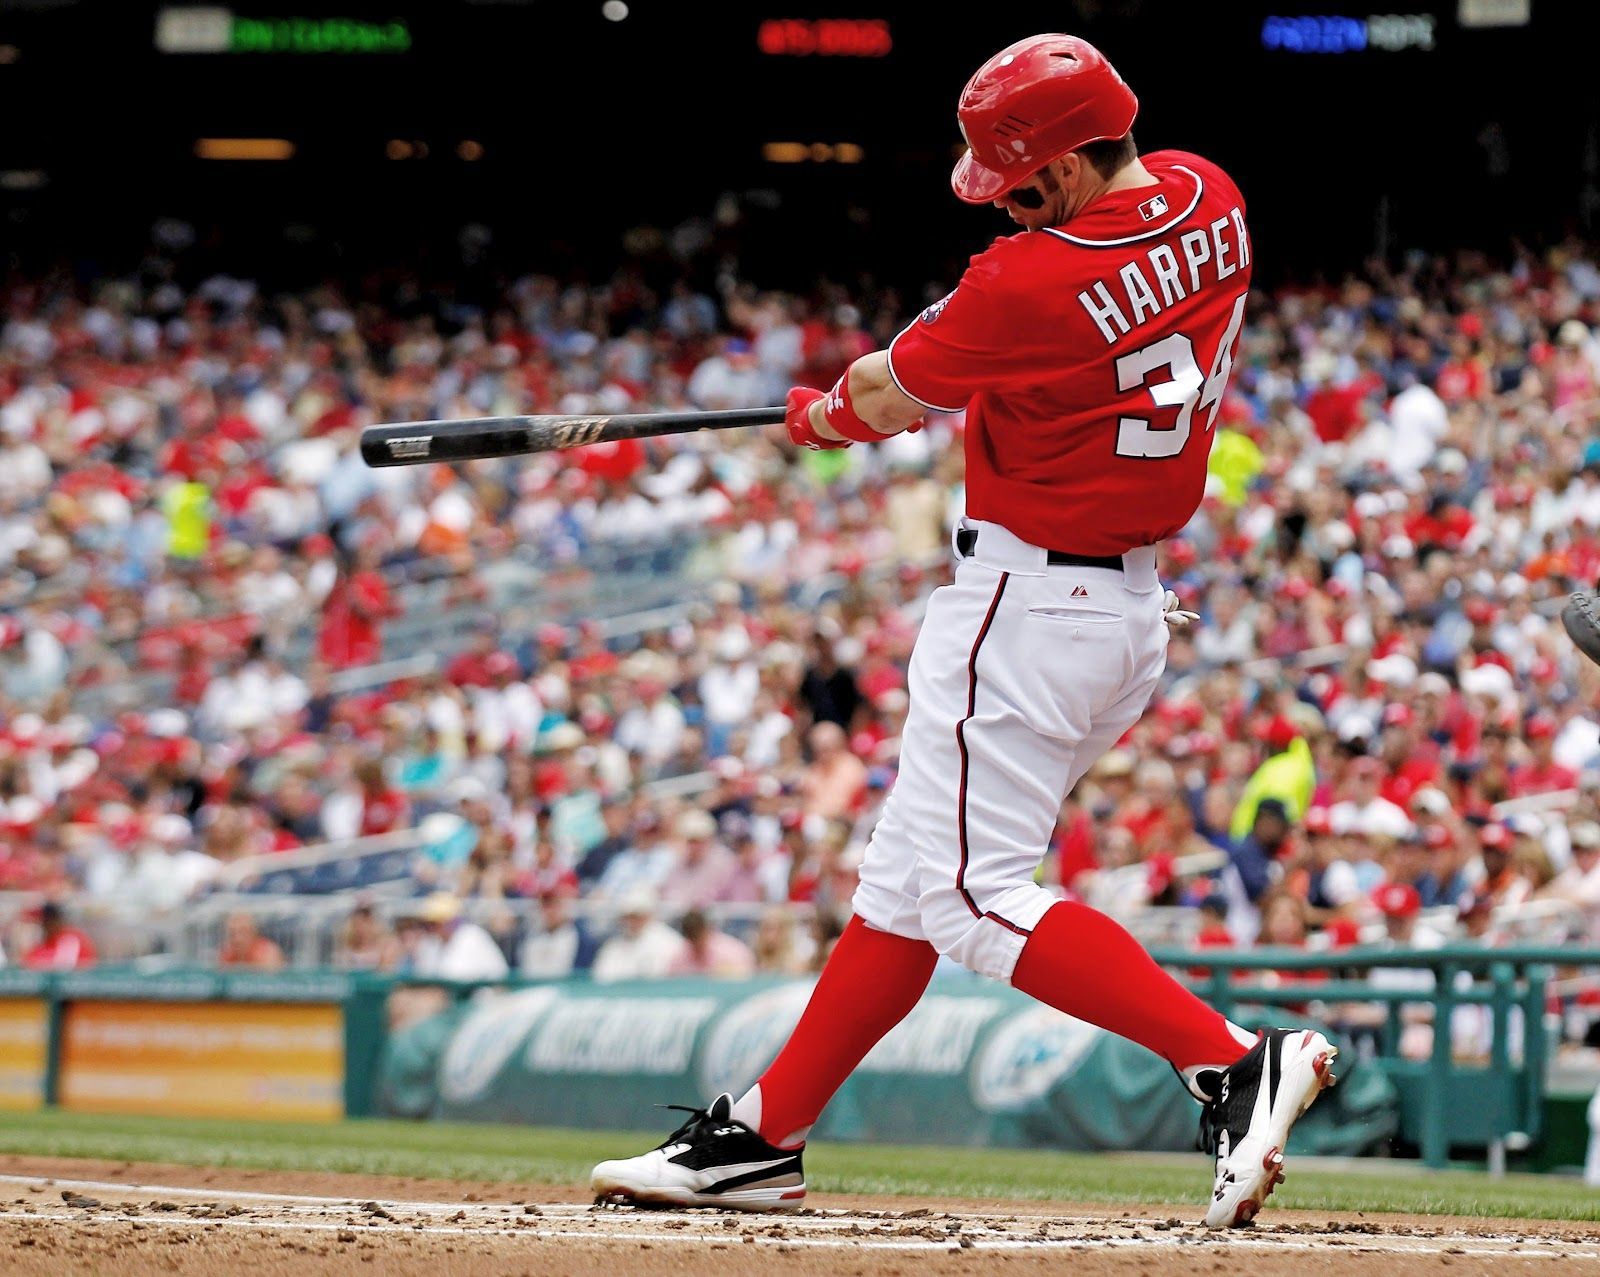 Bryce Harper Is The Right Fielder For The Washington Nationals He Is Young And Fearless Bryc Bryce Harper Washington Nationals Celebrity Wallpapers